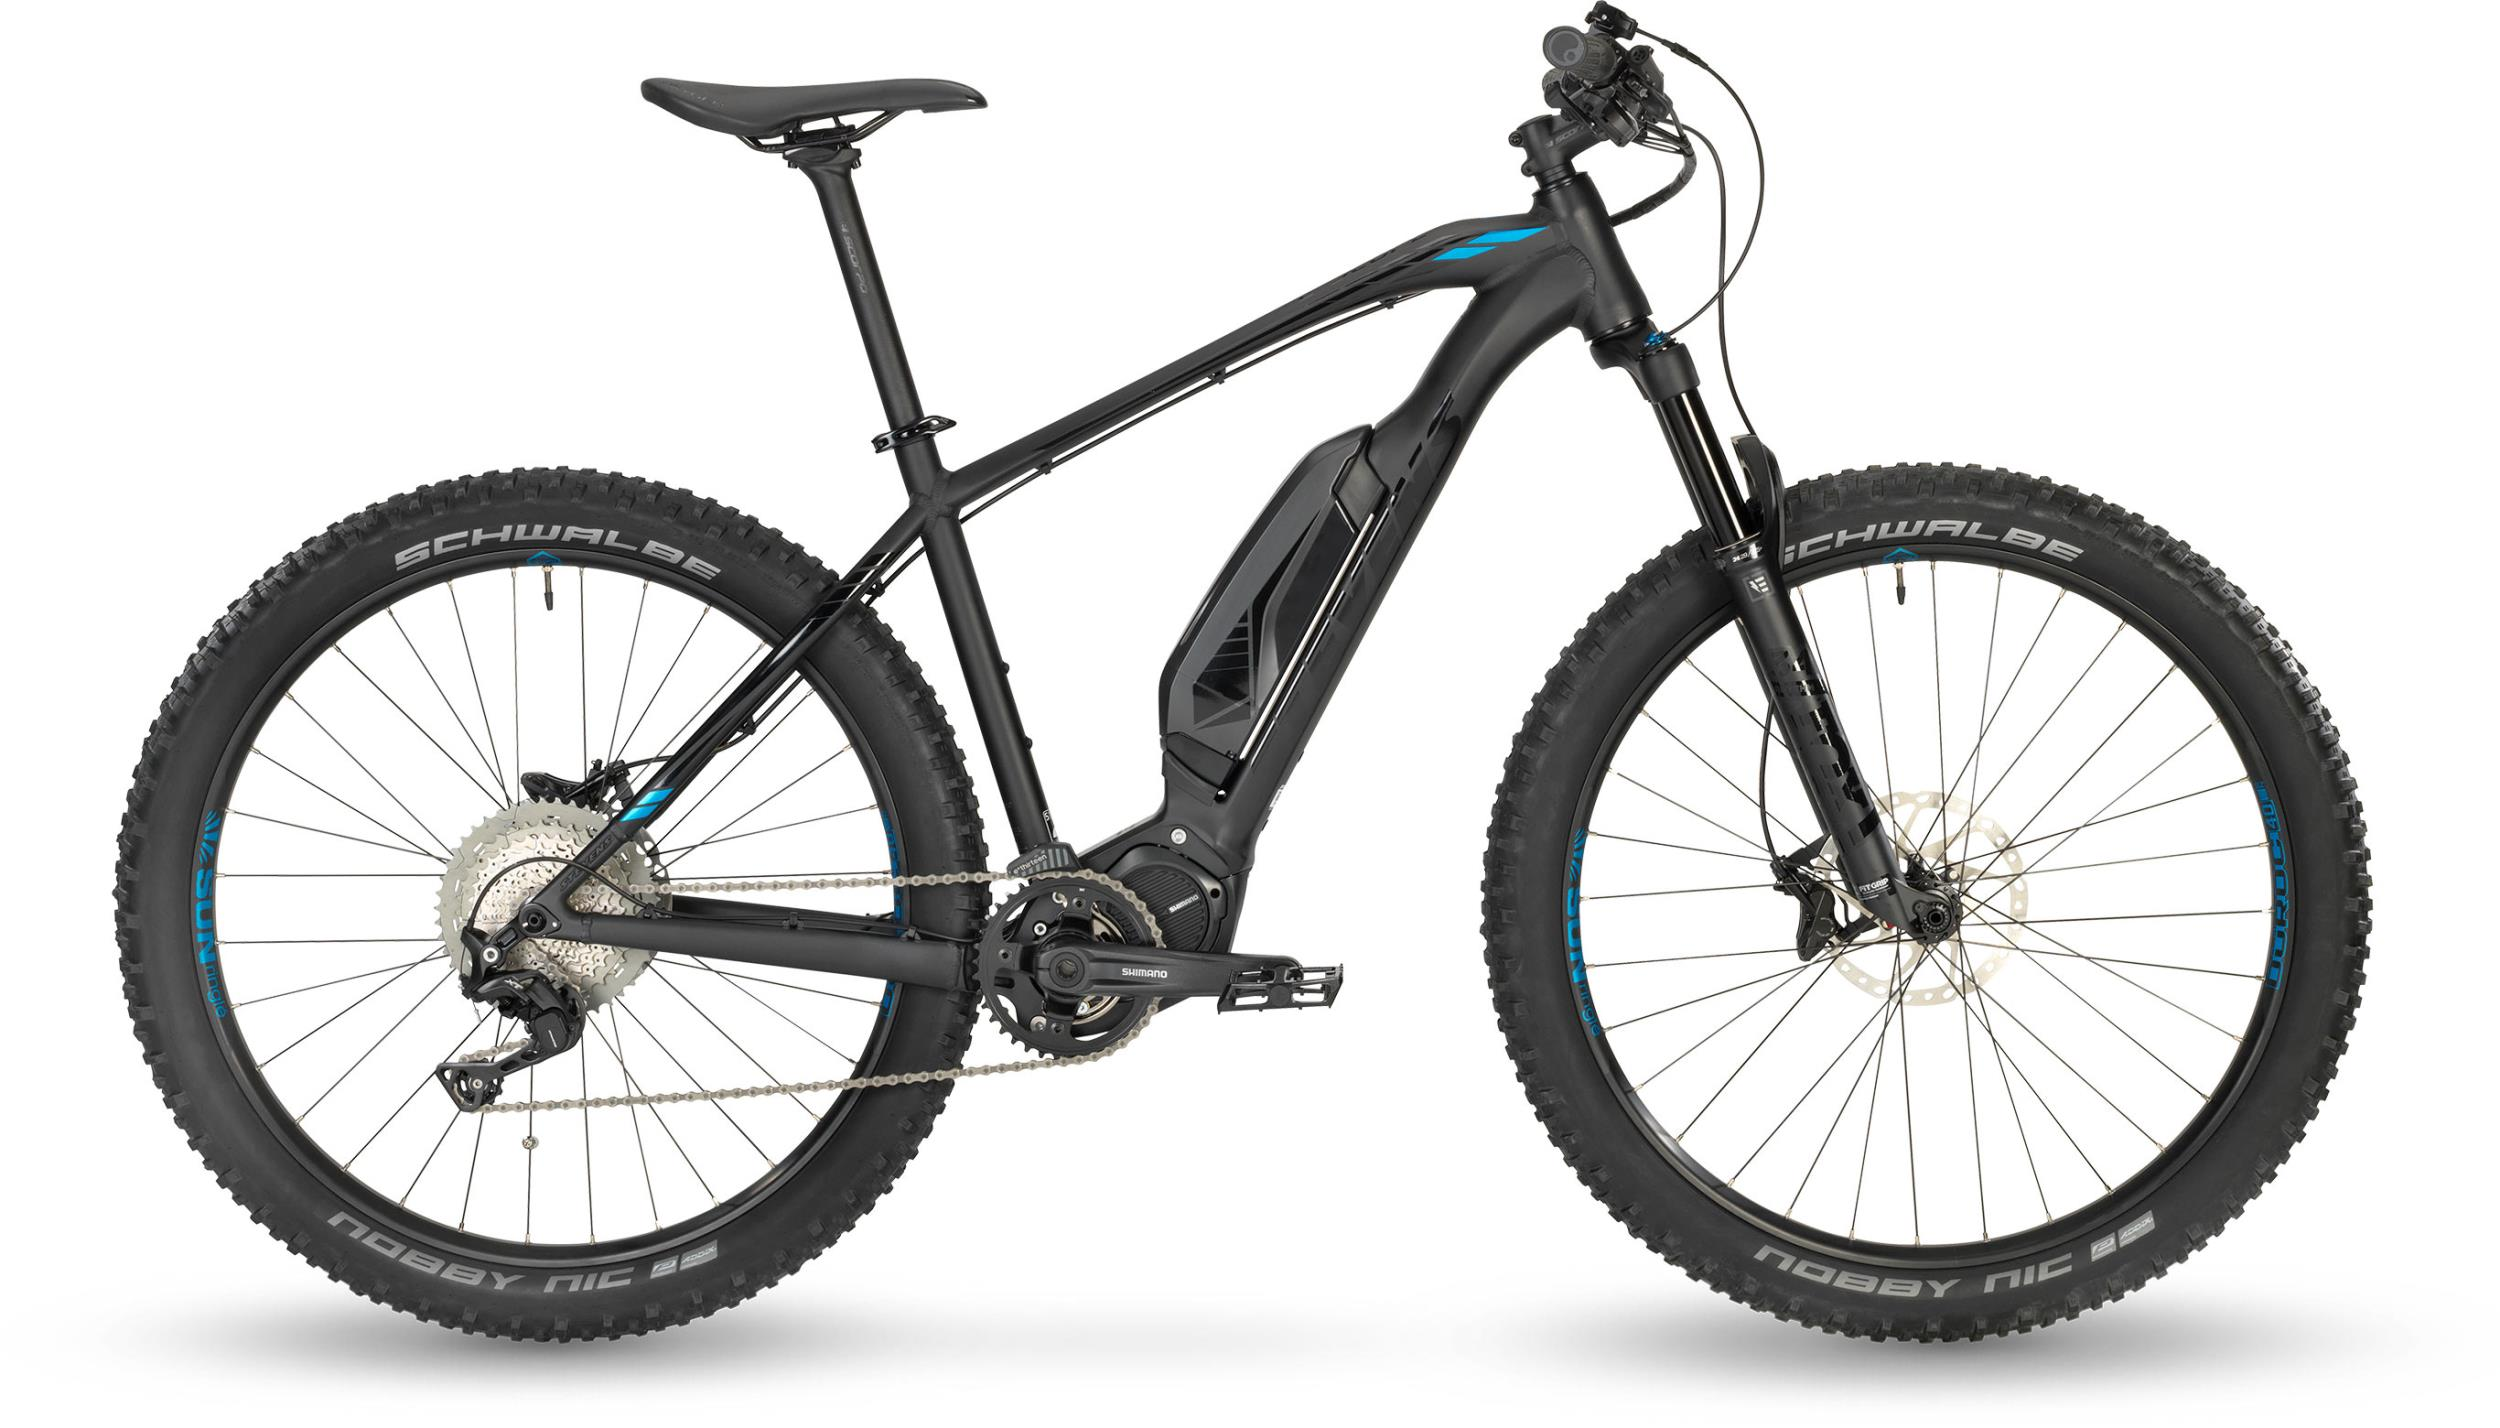 Stevens E-Scope+ Stealth Black 2019 - 27,5 500Wh -  18 Zoll